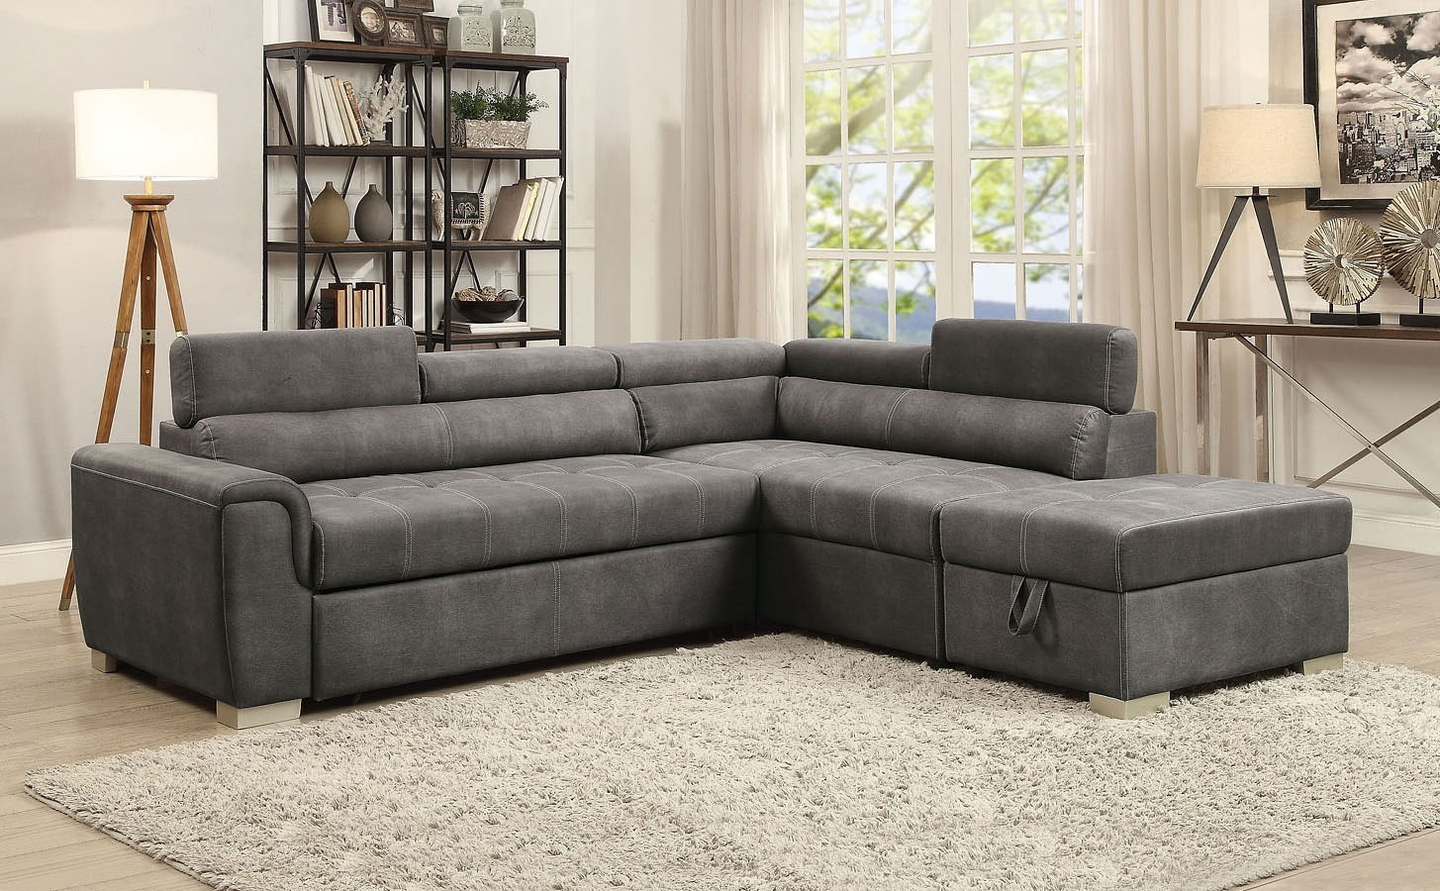 Thelma Sectional With Pull Out Bed